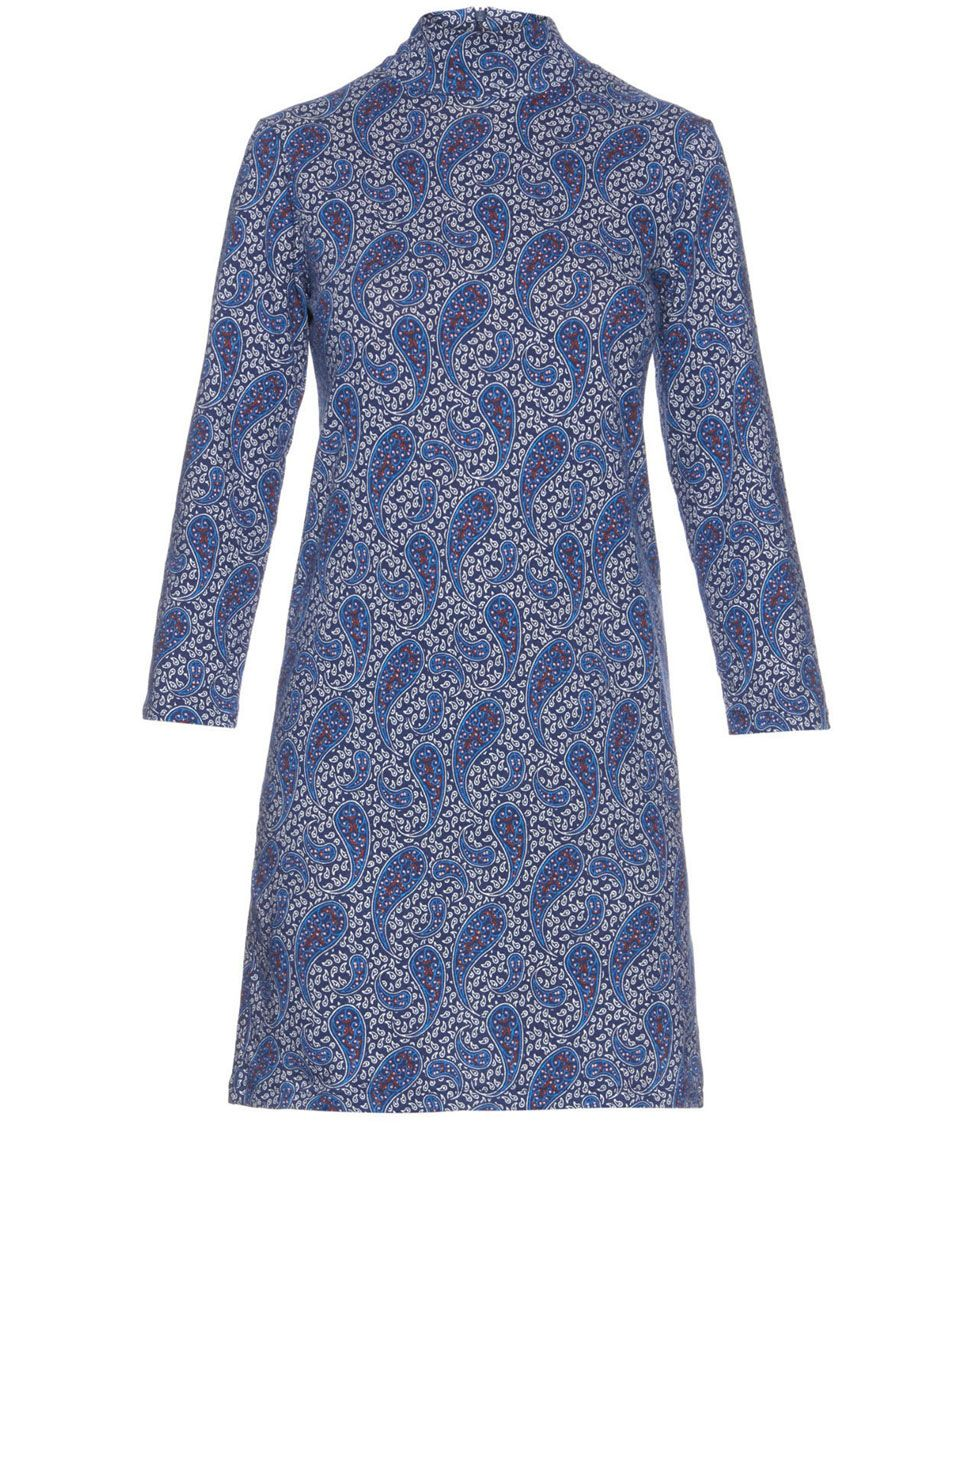 "<p>A.P.C. Lydie Paisley-Print Dress, $172; <a href=""http://rstyle.me/n/beff6nbc6jf"">matchesfashion.com</a></p>"